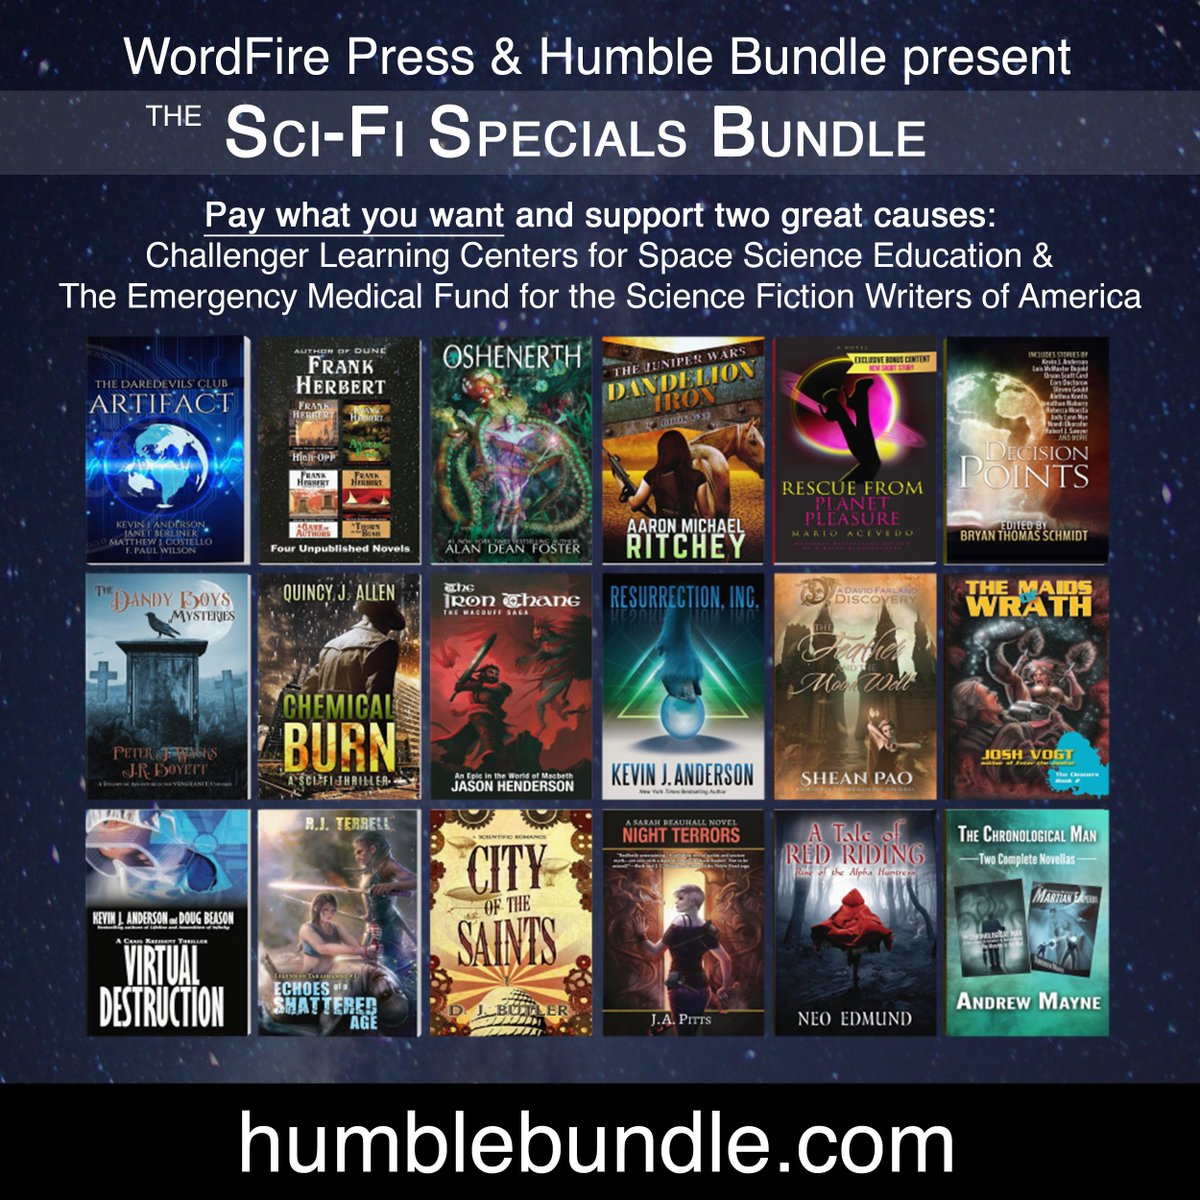 Miss it last night? new HumbleBundle https://t.co/6eyVUPay4J 1 of my books w/ my #WritingHeroes I'm a #WriterPuddle https://t.co/XKshCP2Oz7